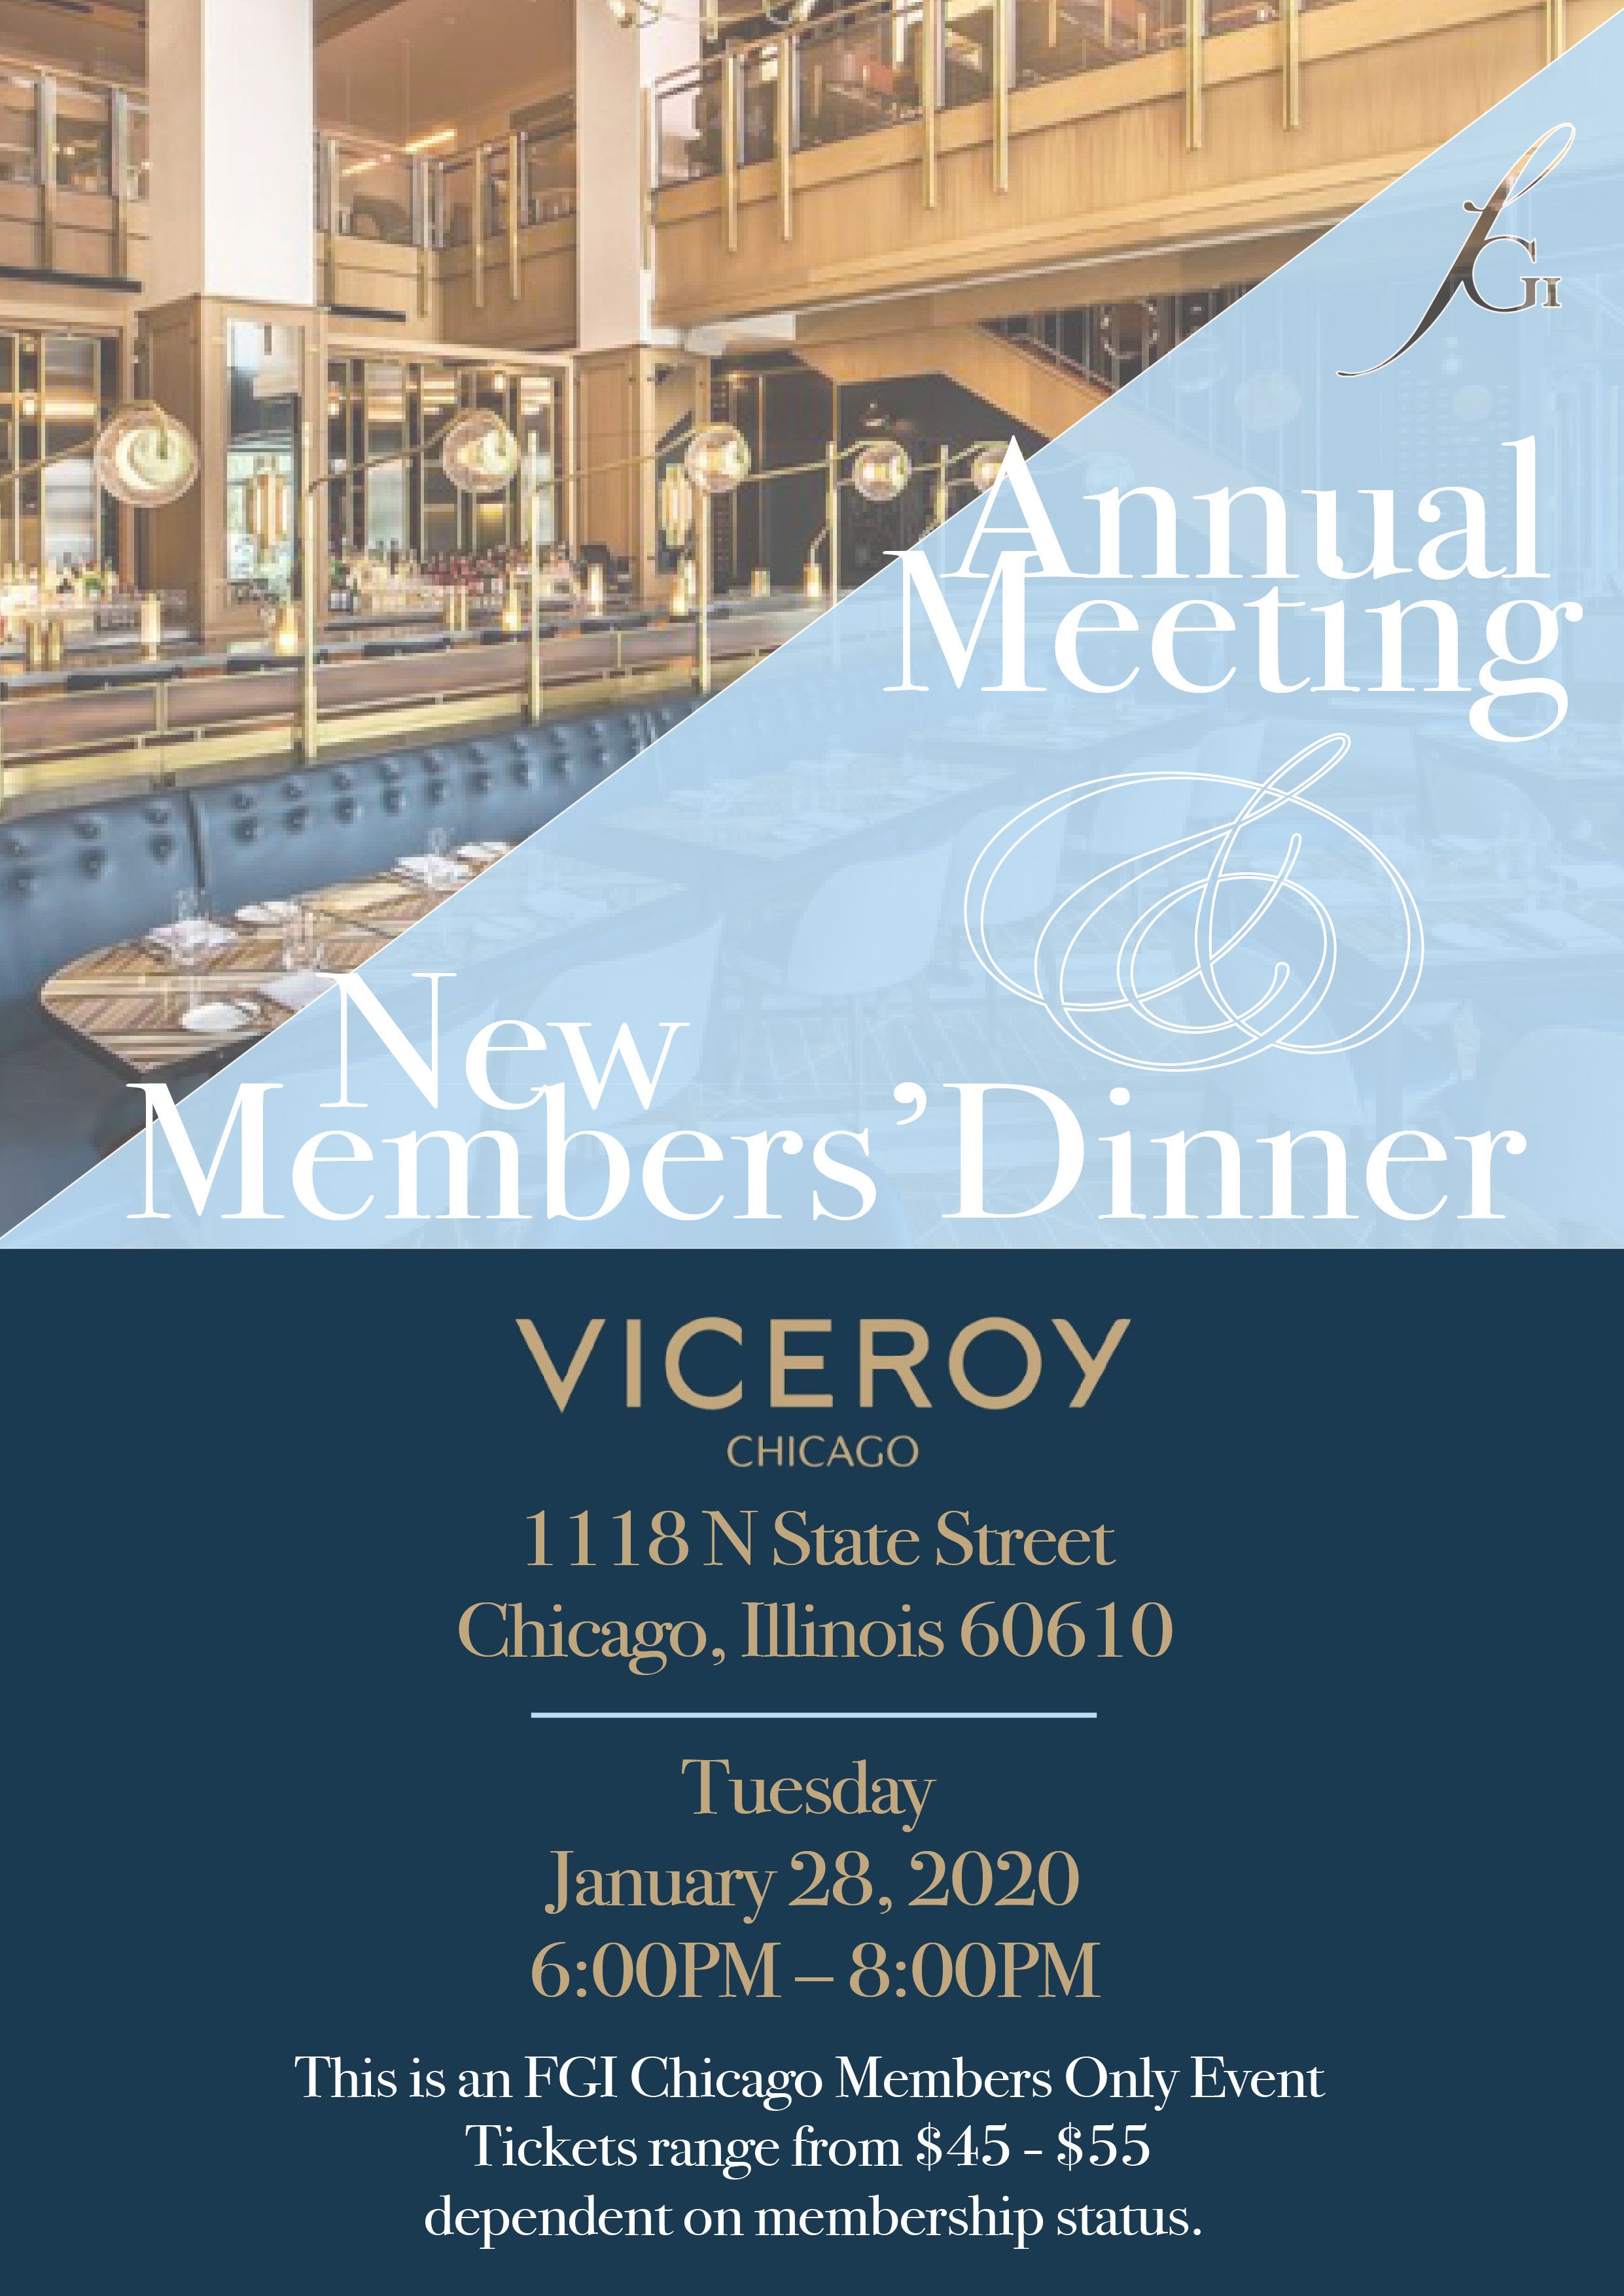 fgi chicago event annual meeting new member welcome dinner viceroy